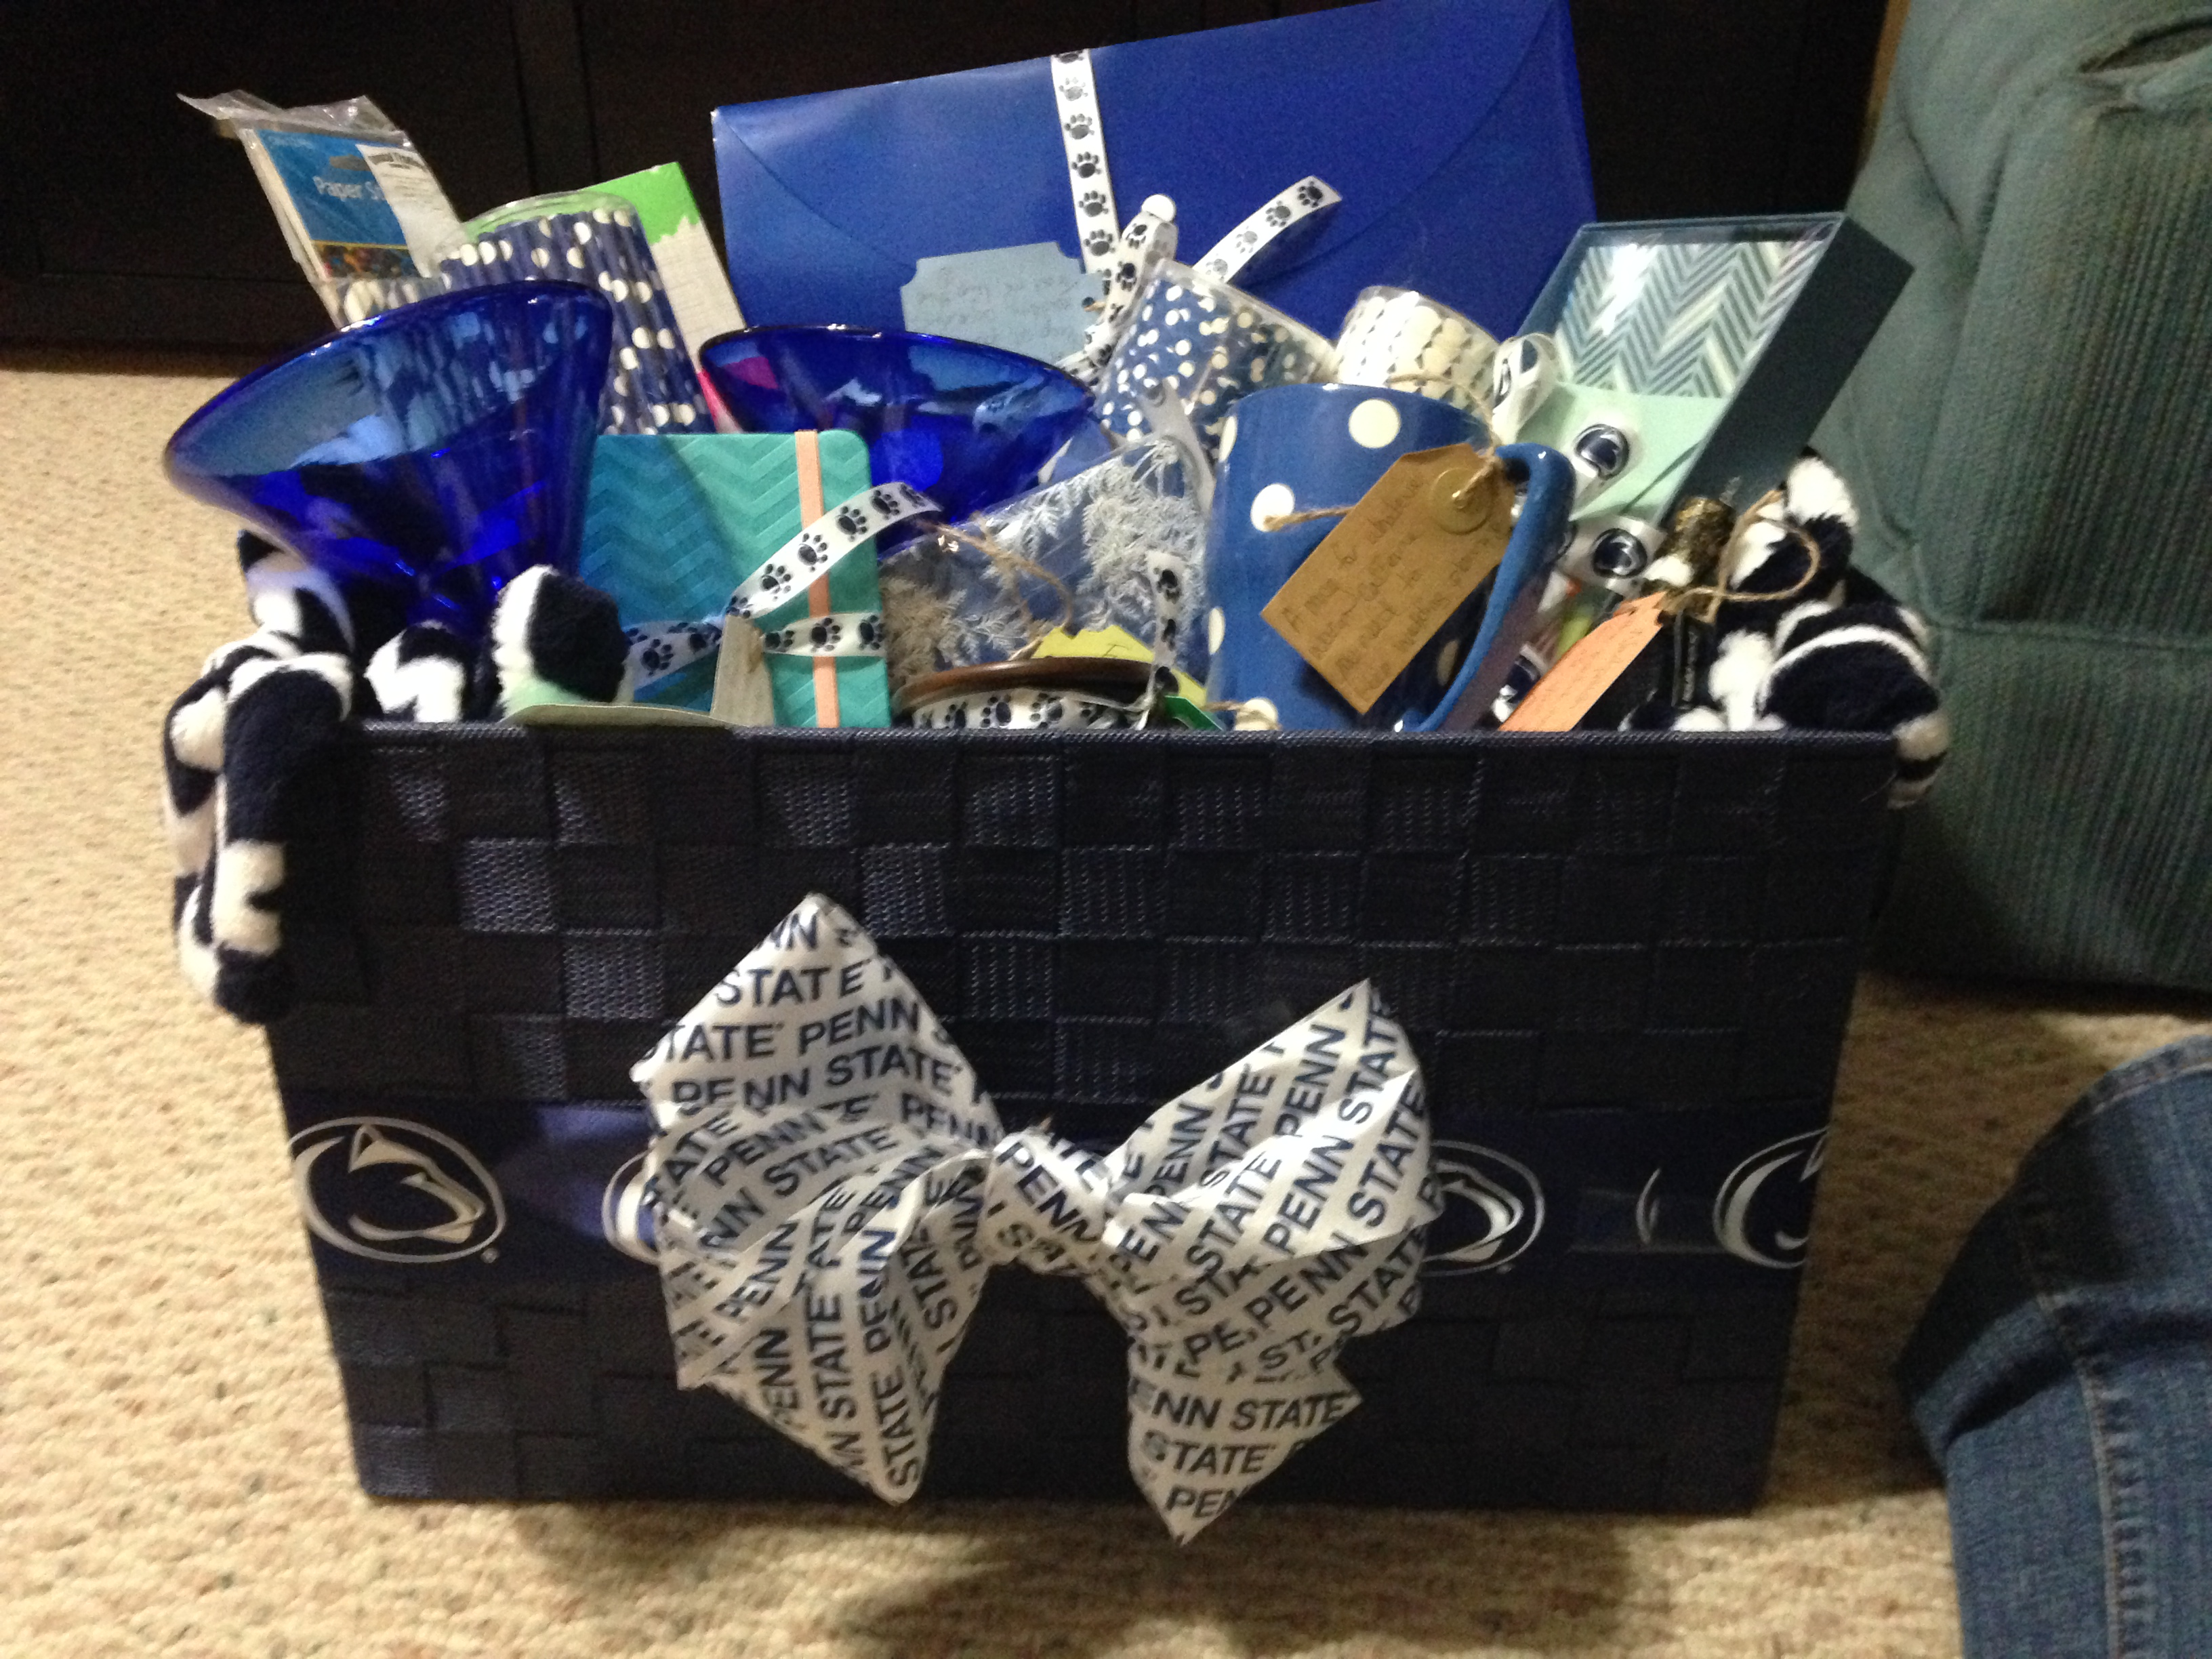 Penn State Wedding Gifts: Engagement Party Gift Basket: PSU Themed!